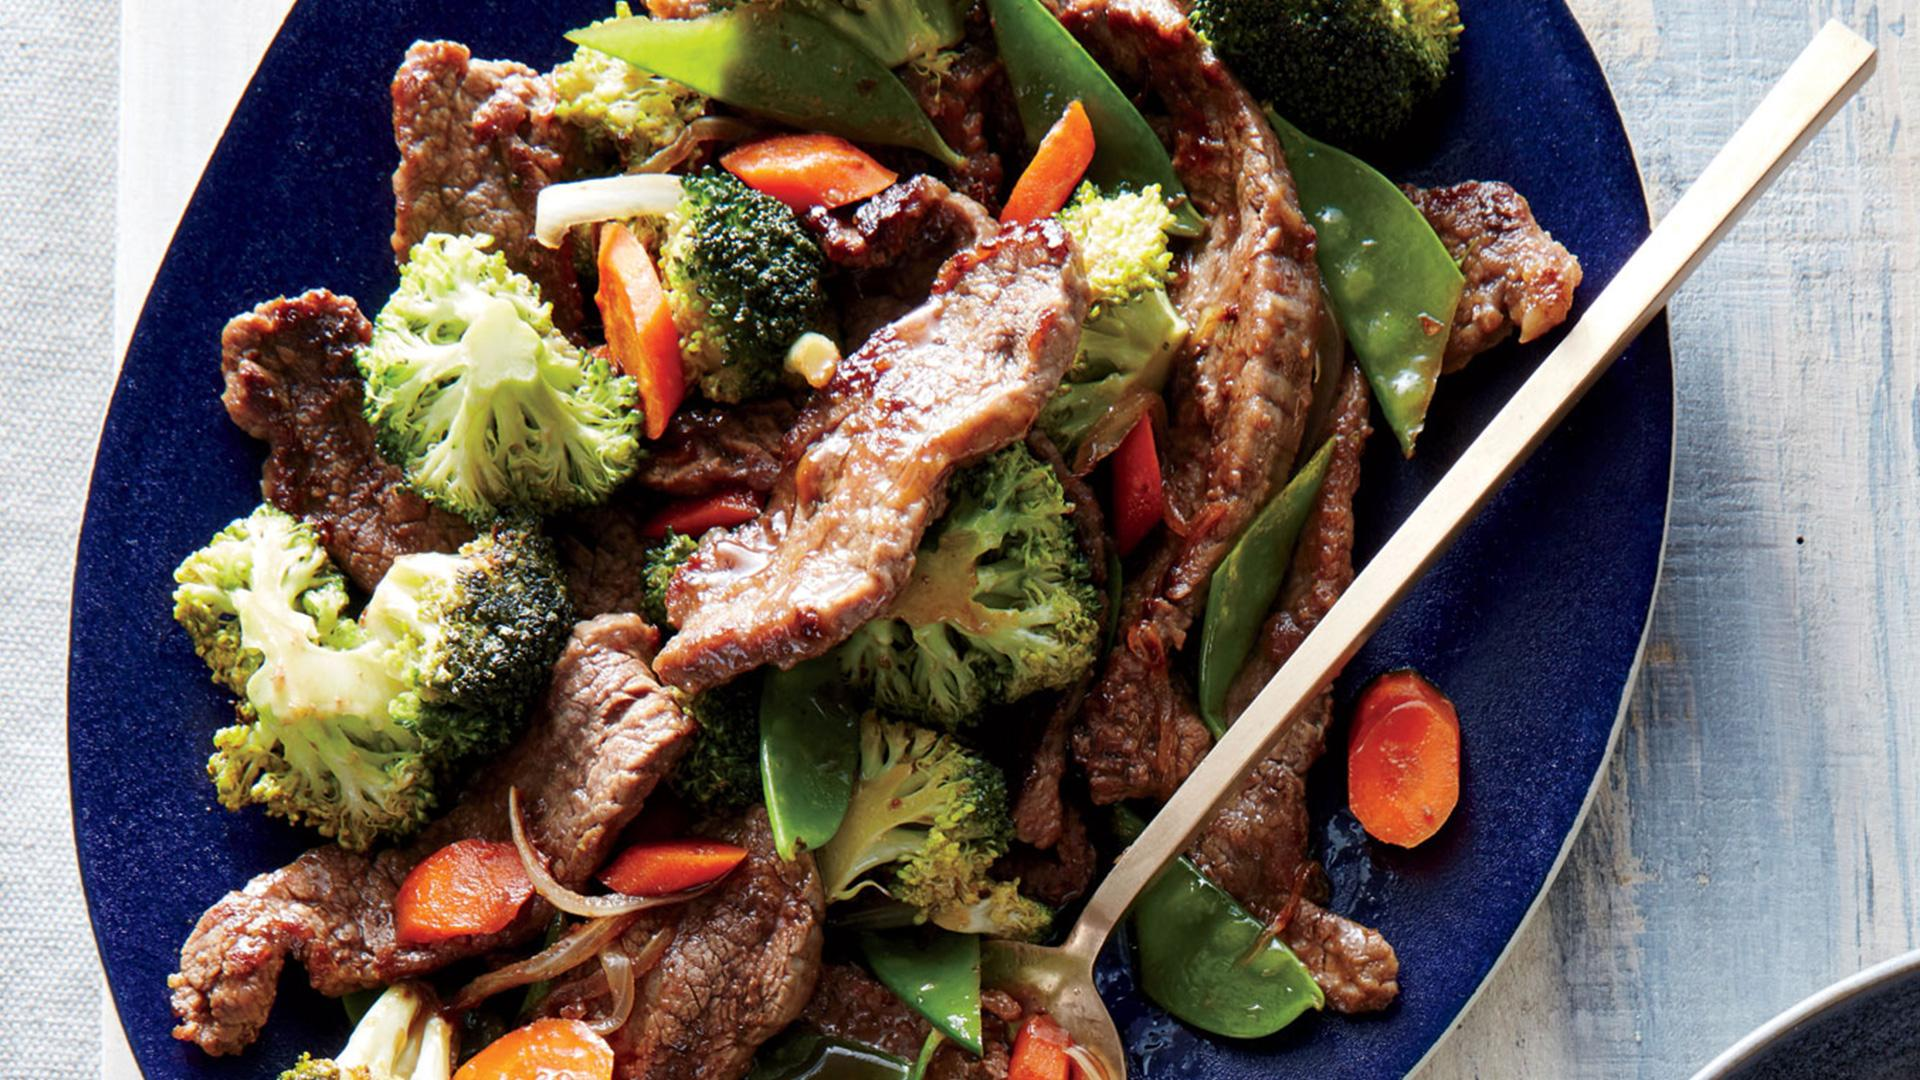 How to Make Mongolian Beef and Veggies